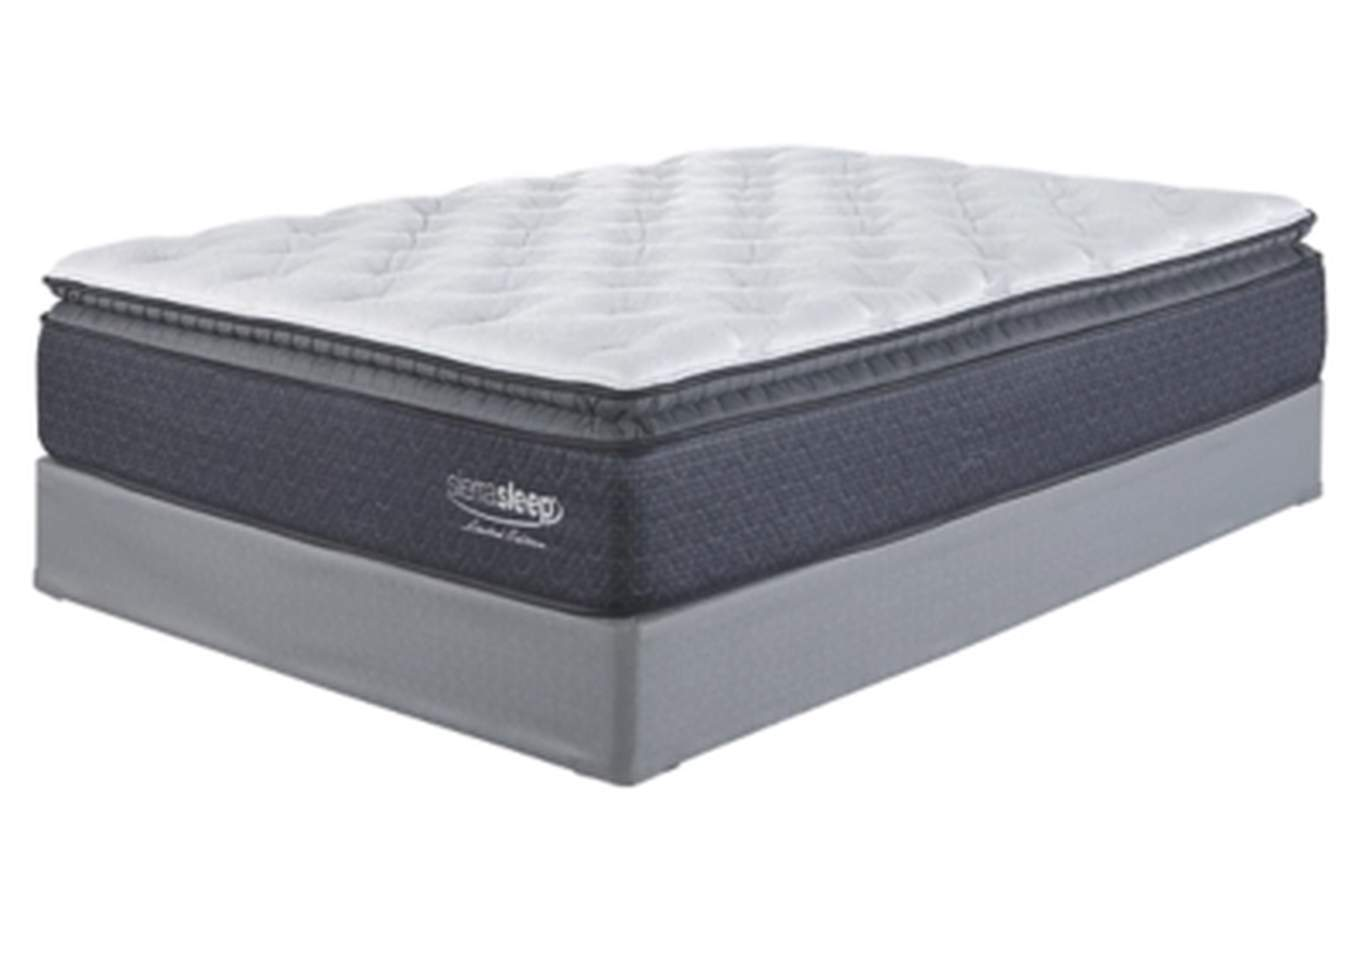 Limited Edition Pillowtop White California King Mattress,Sierra Sleep by Ashley